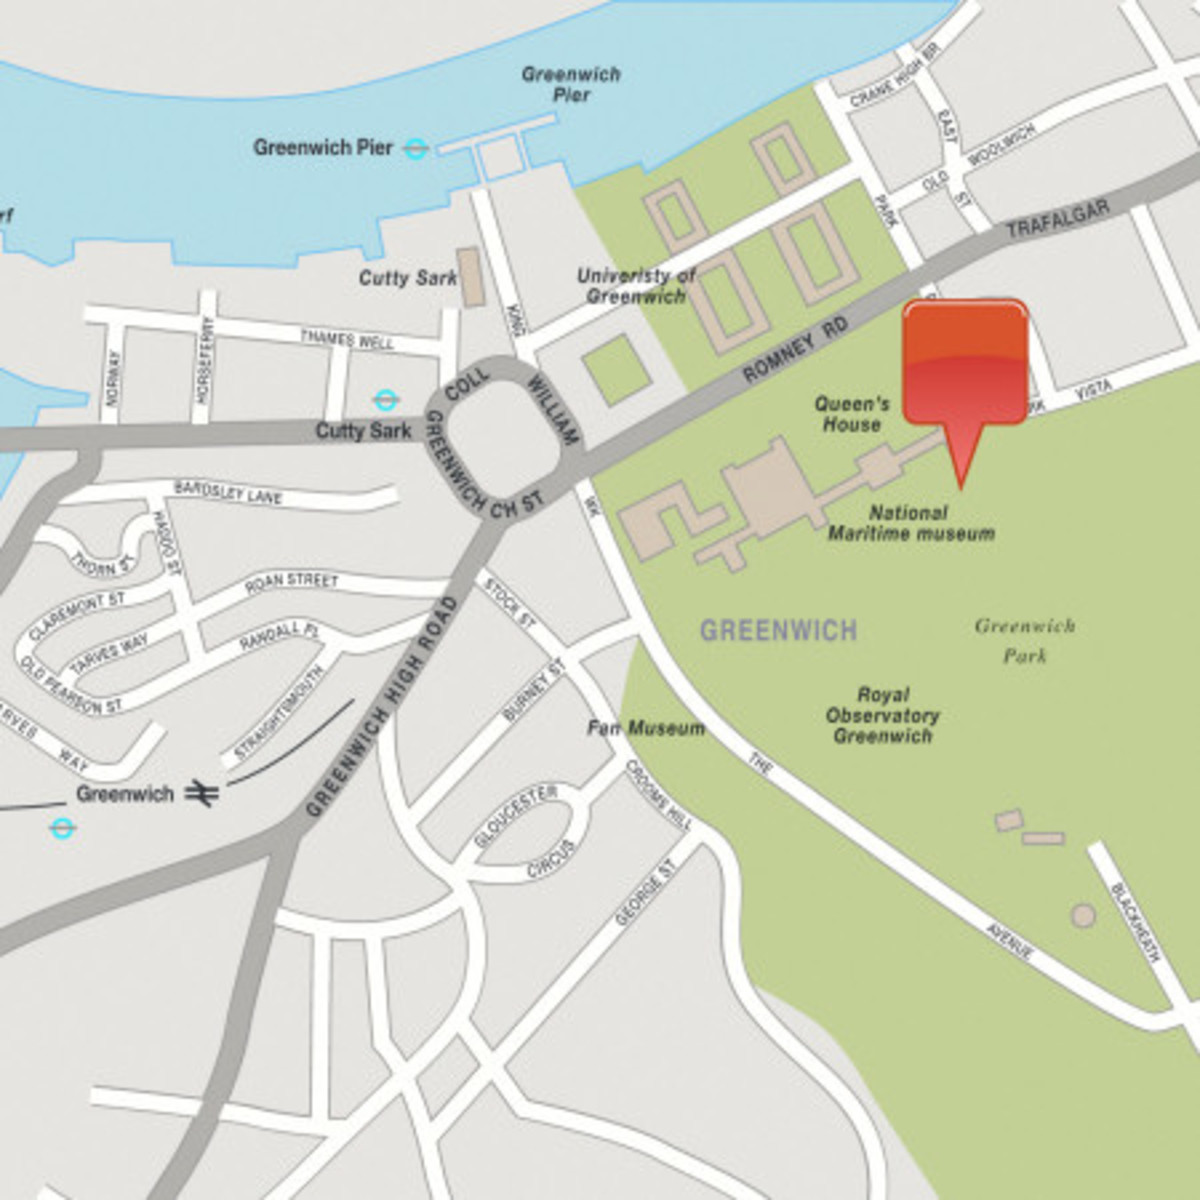 The location of the NMM in Greenwich, not far from the Thames and the preserved 'Cutty Sark'